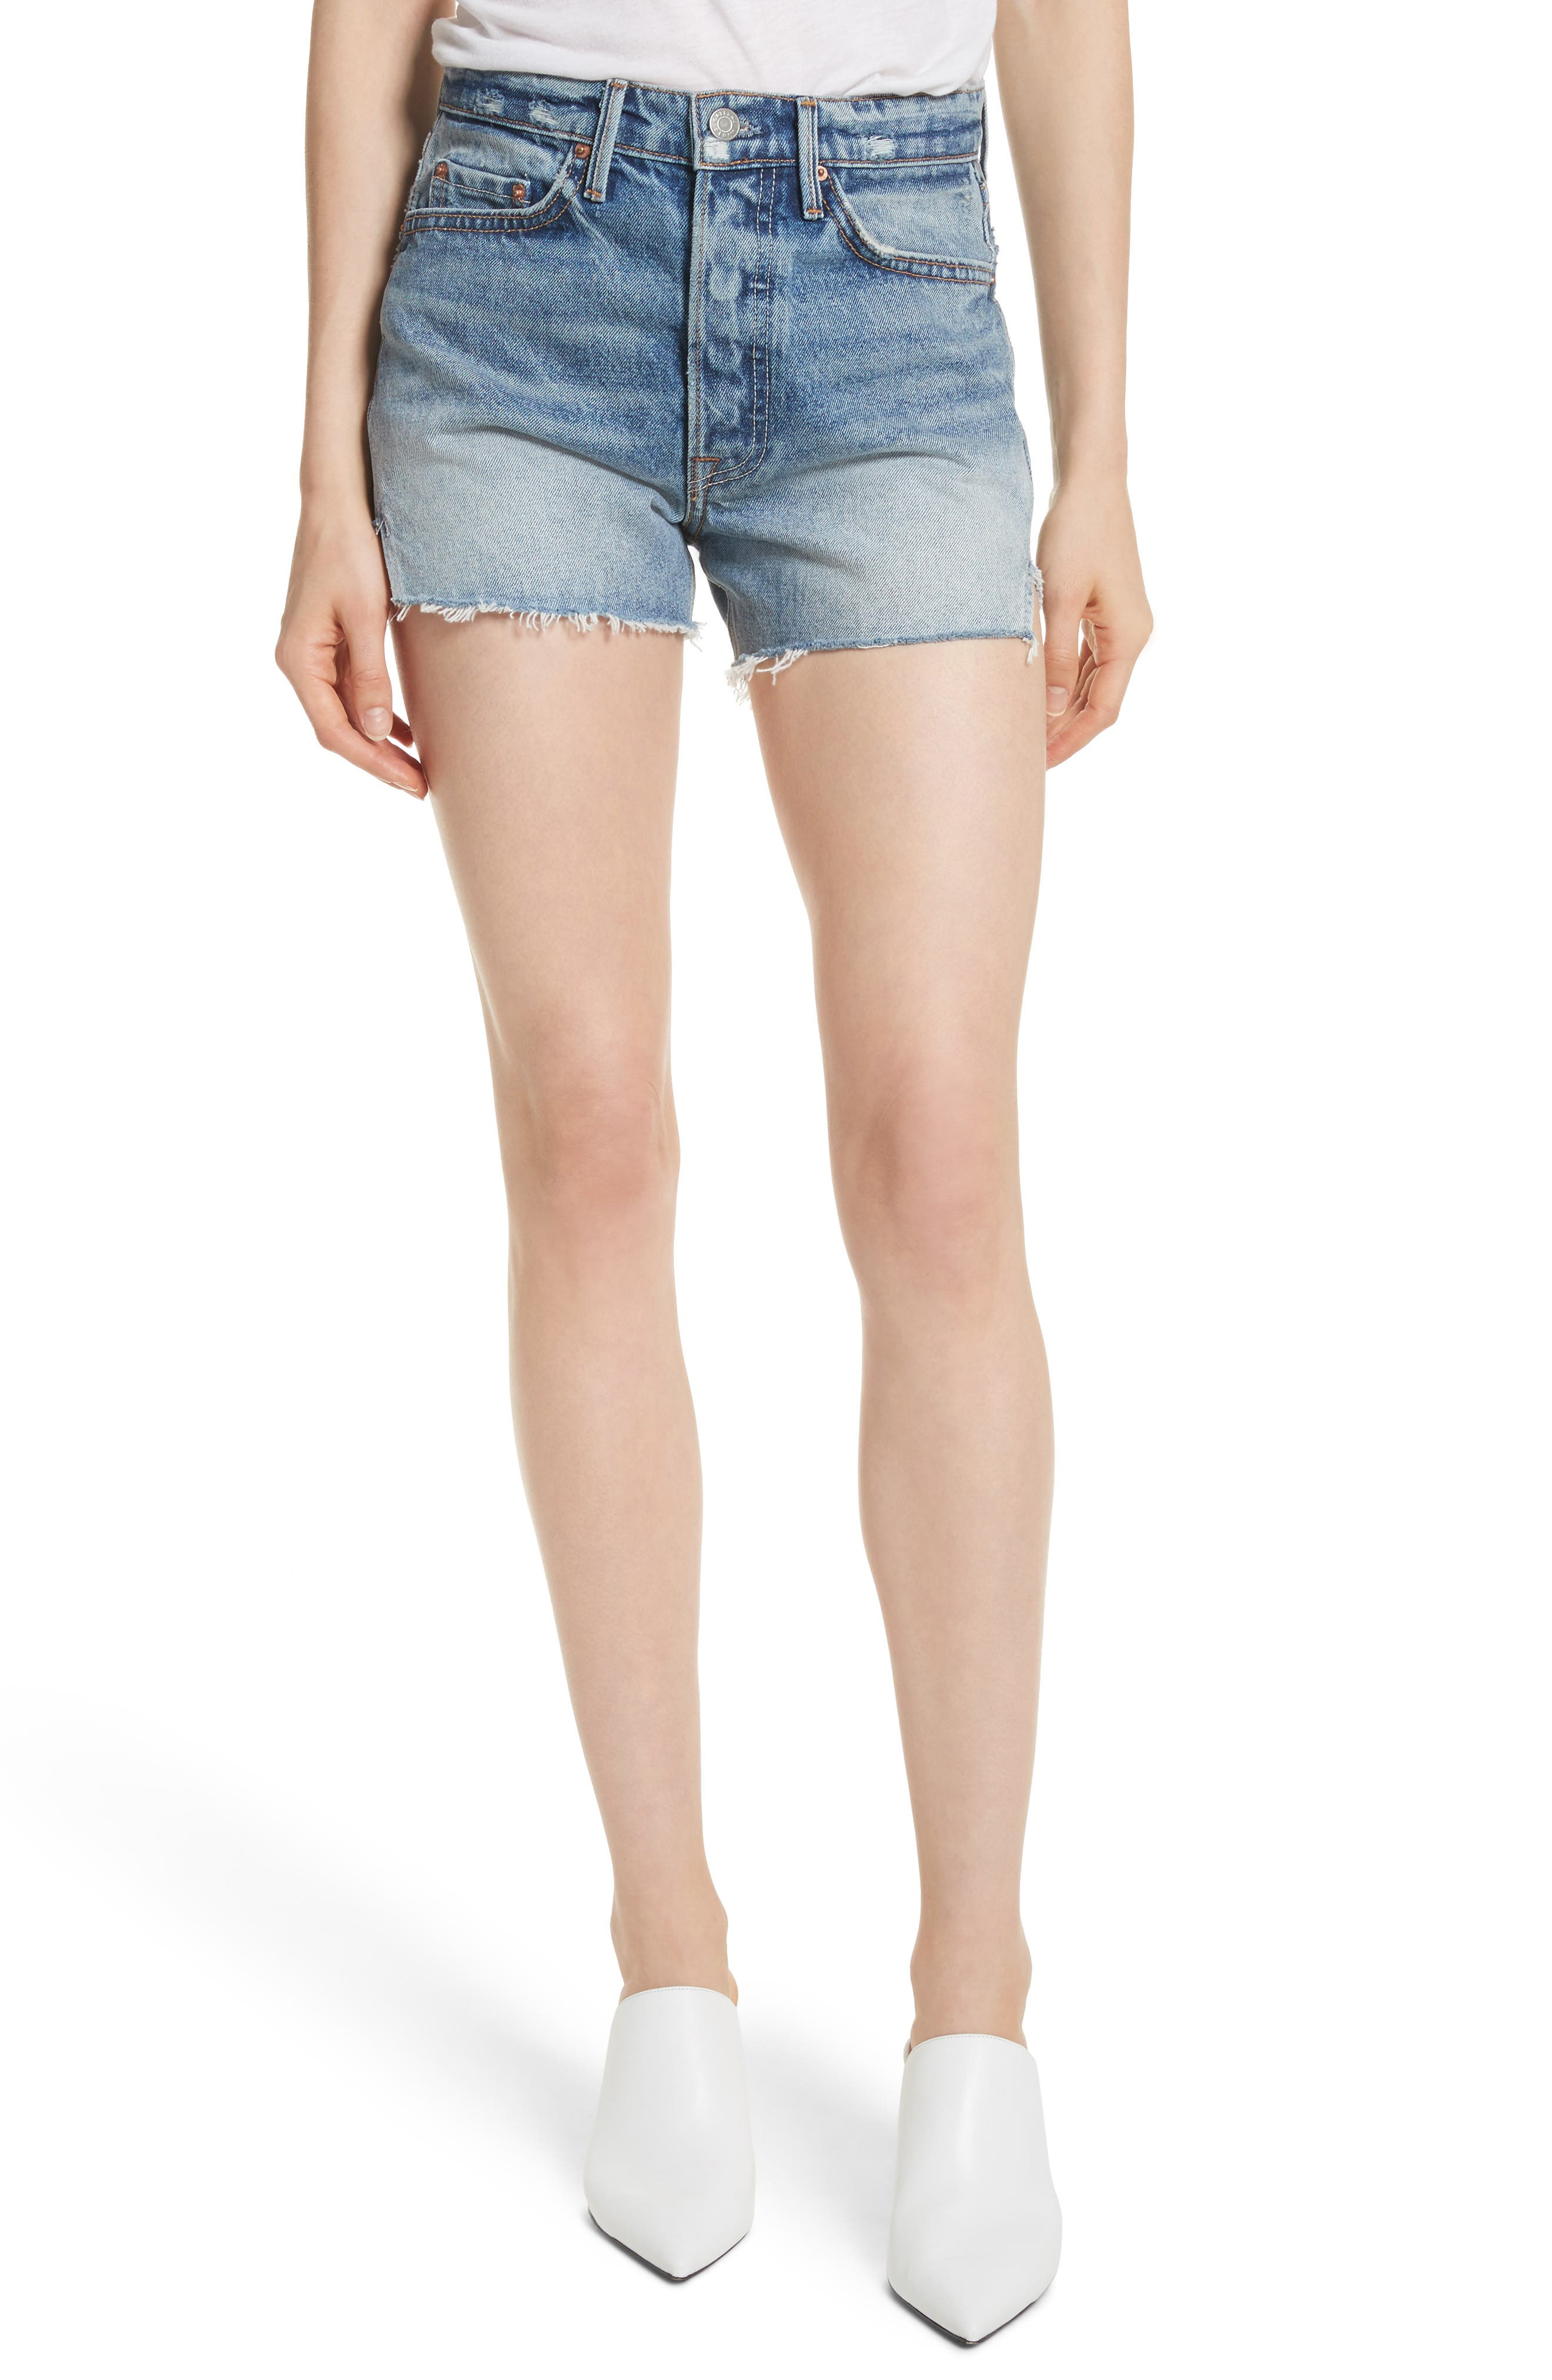 Mardee Denim Shorts,                         Main,                         color, Twisted